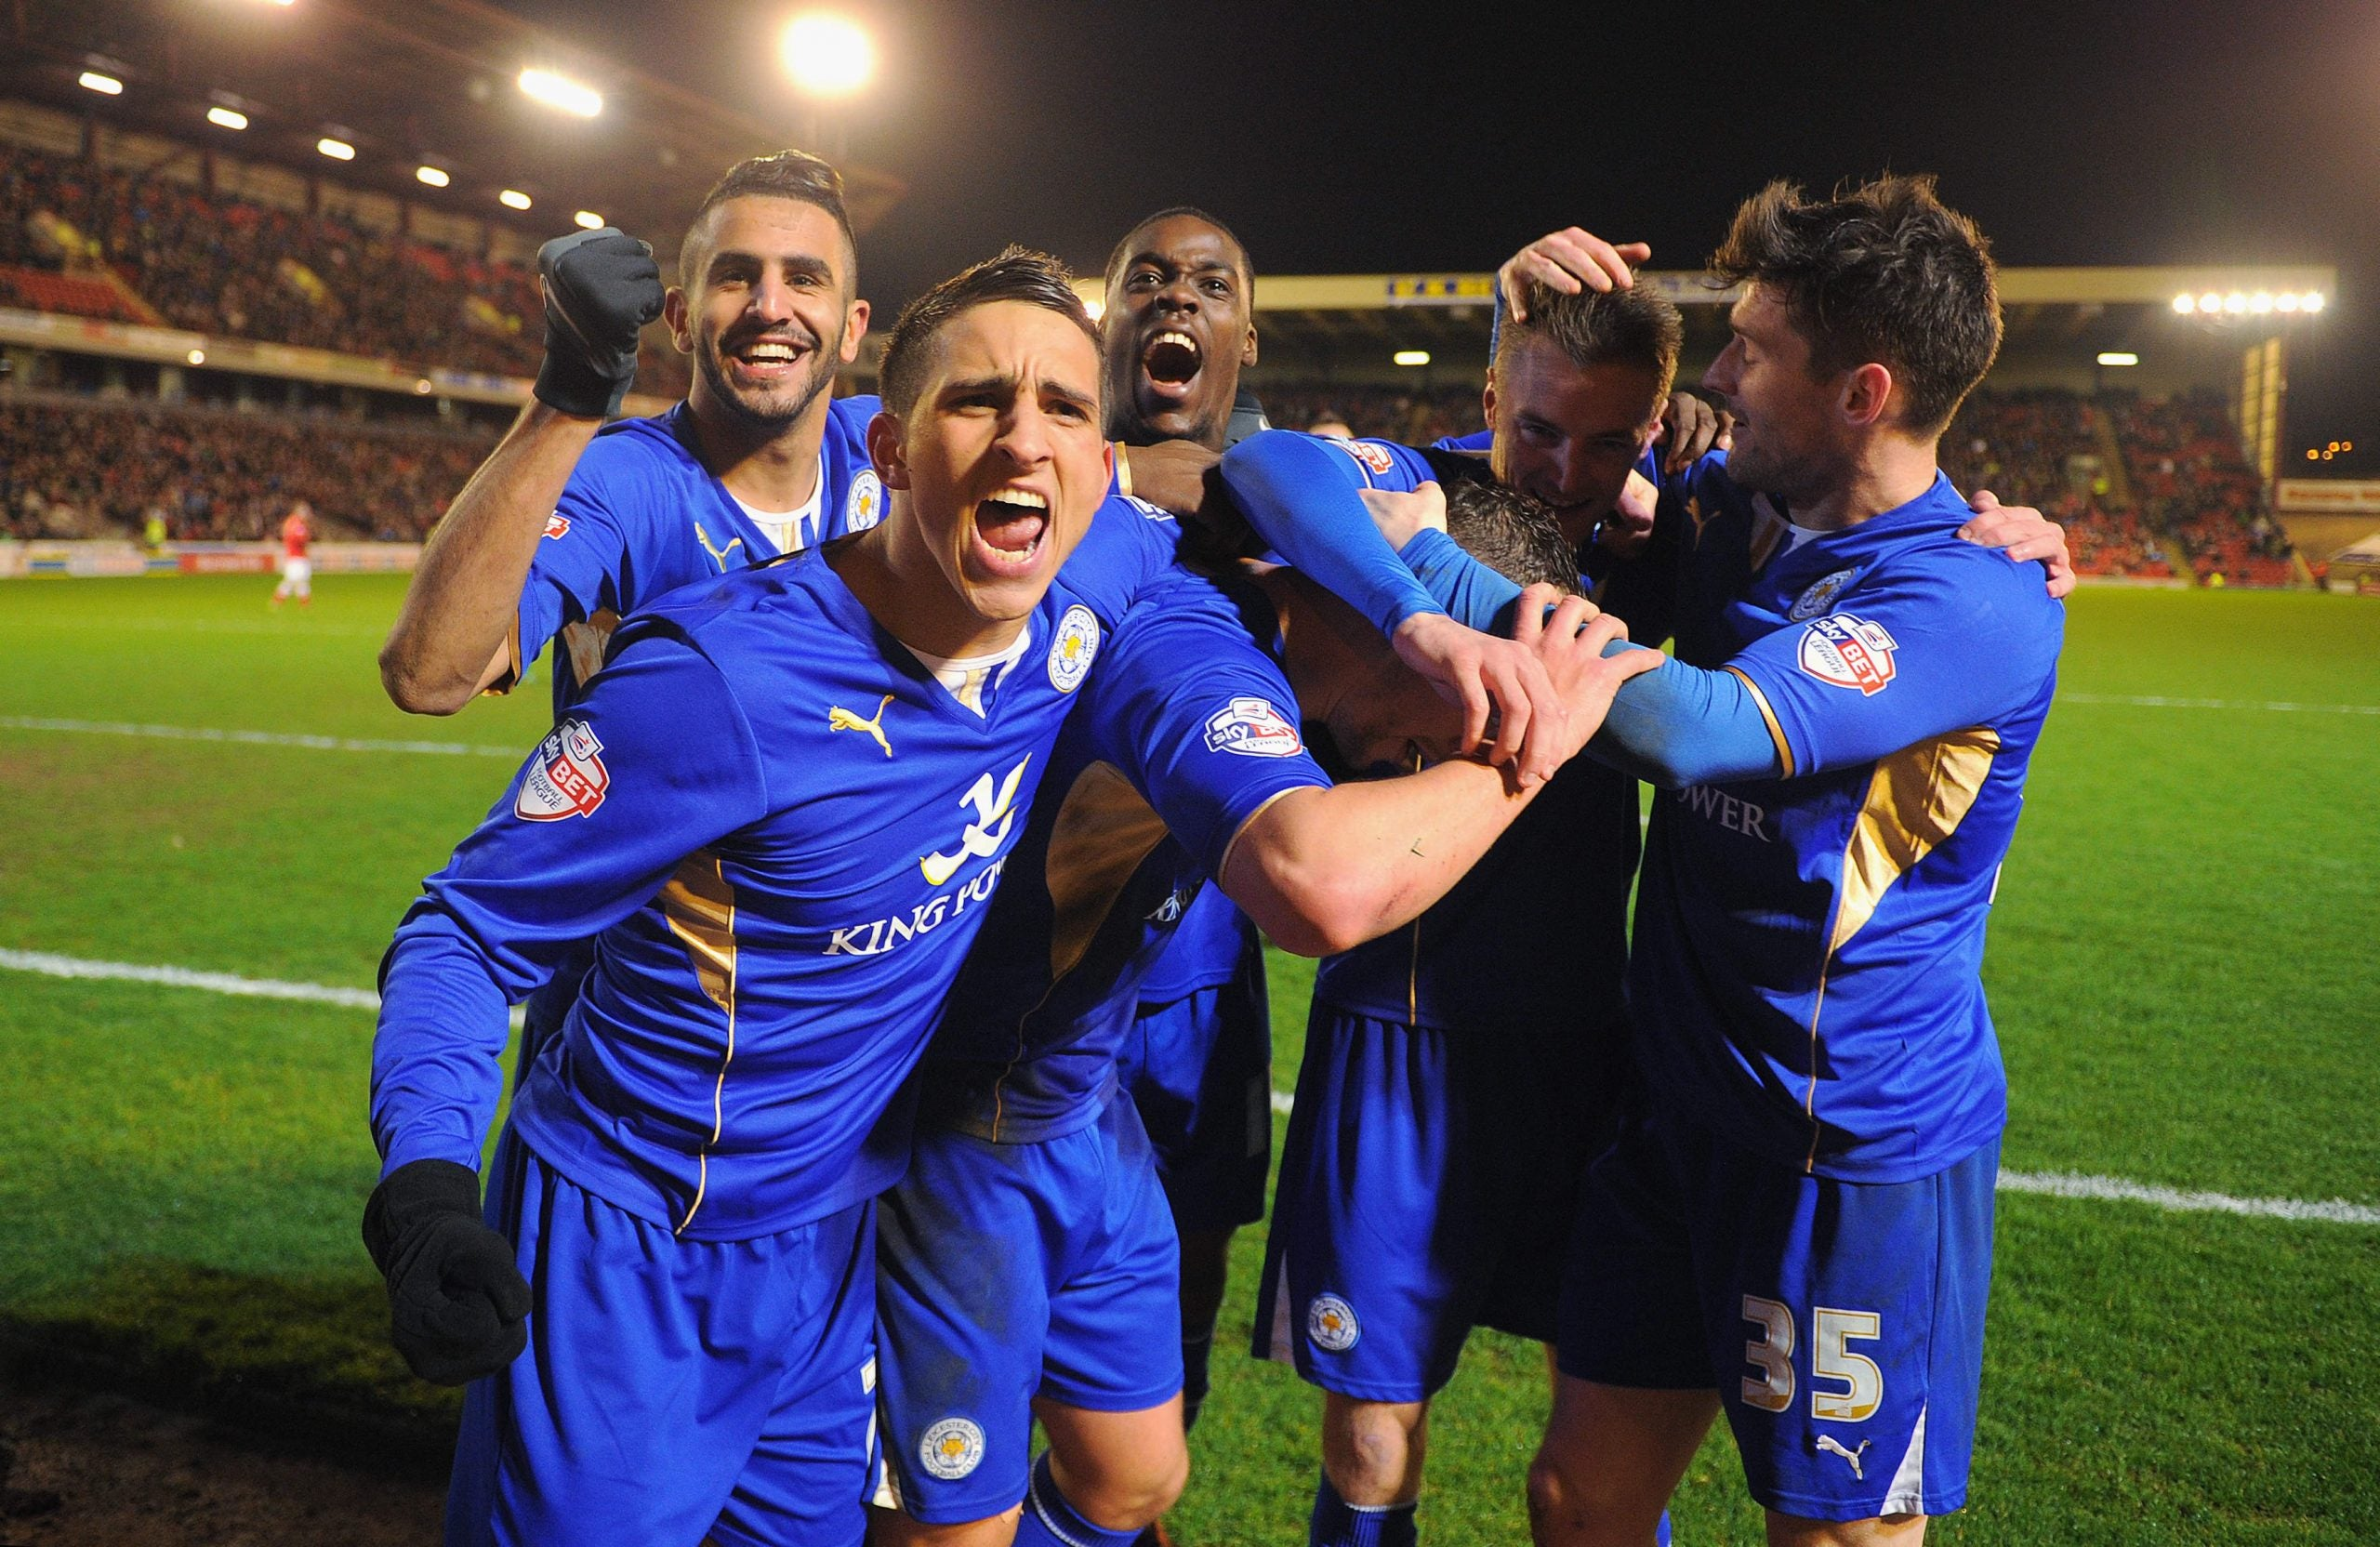 Leicester City have revived the Premier League by reconnecting with sport's origins in play